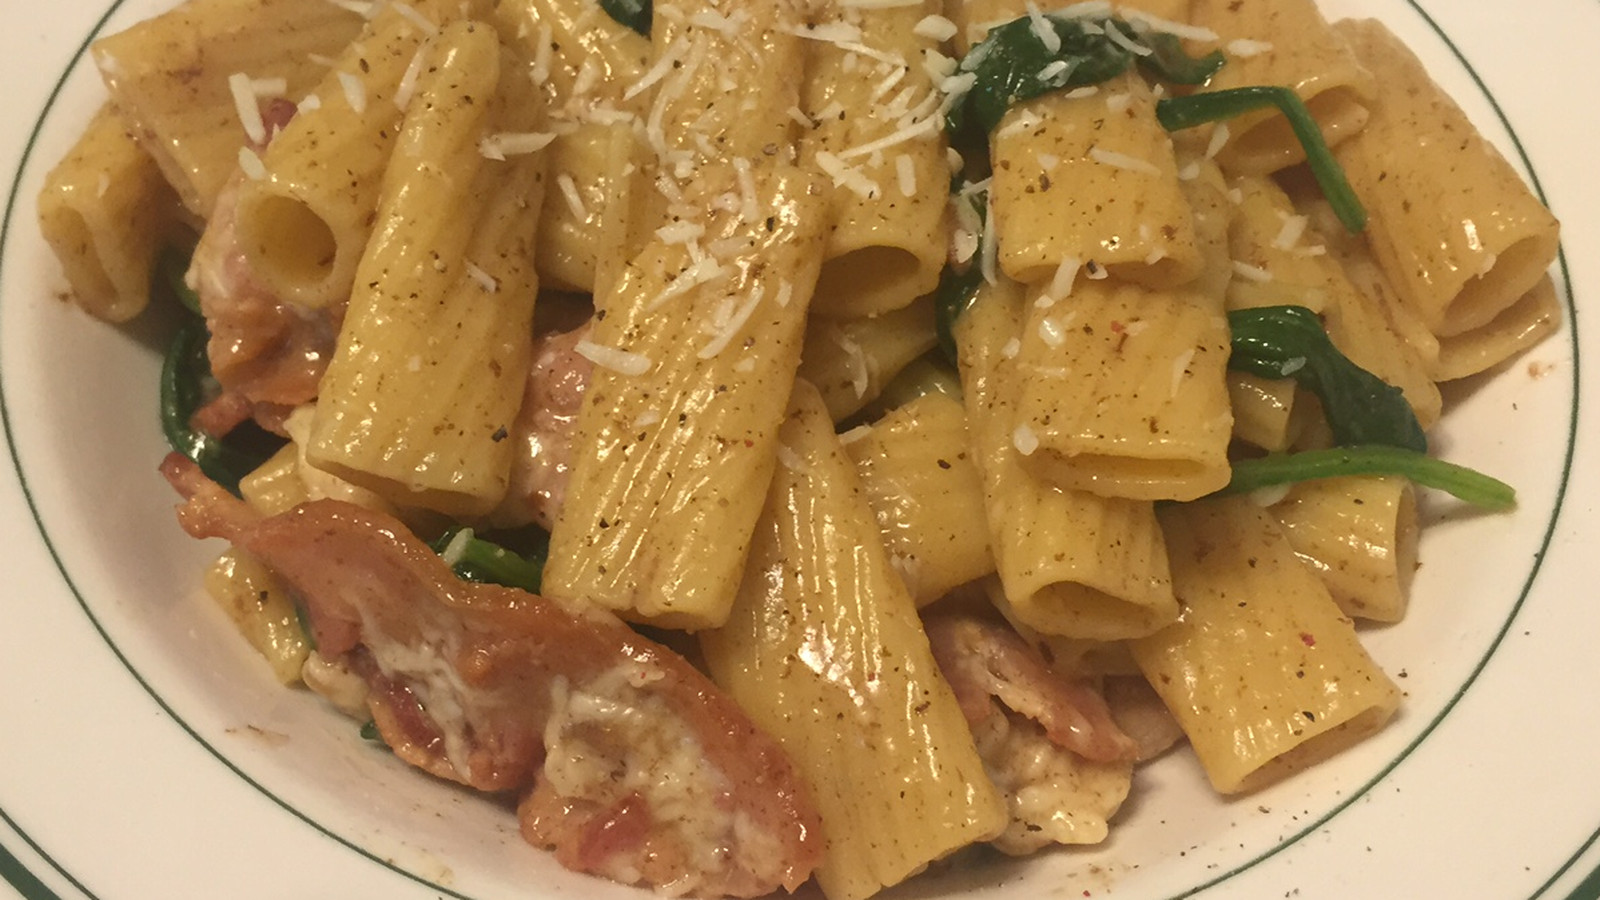 And the Valley Cooks: Bacon-Spinach-Parmesan Pasta